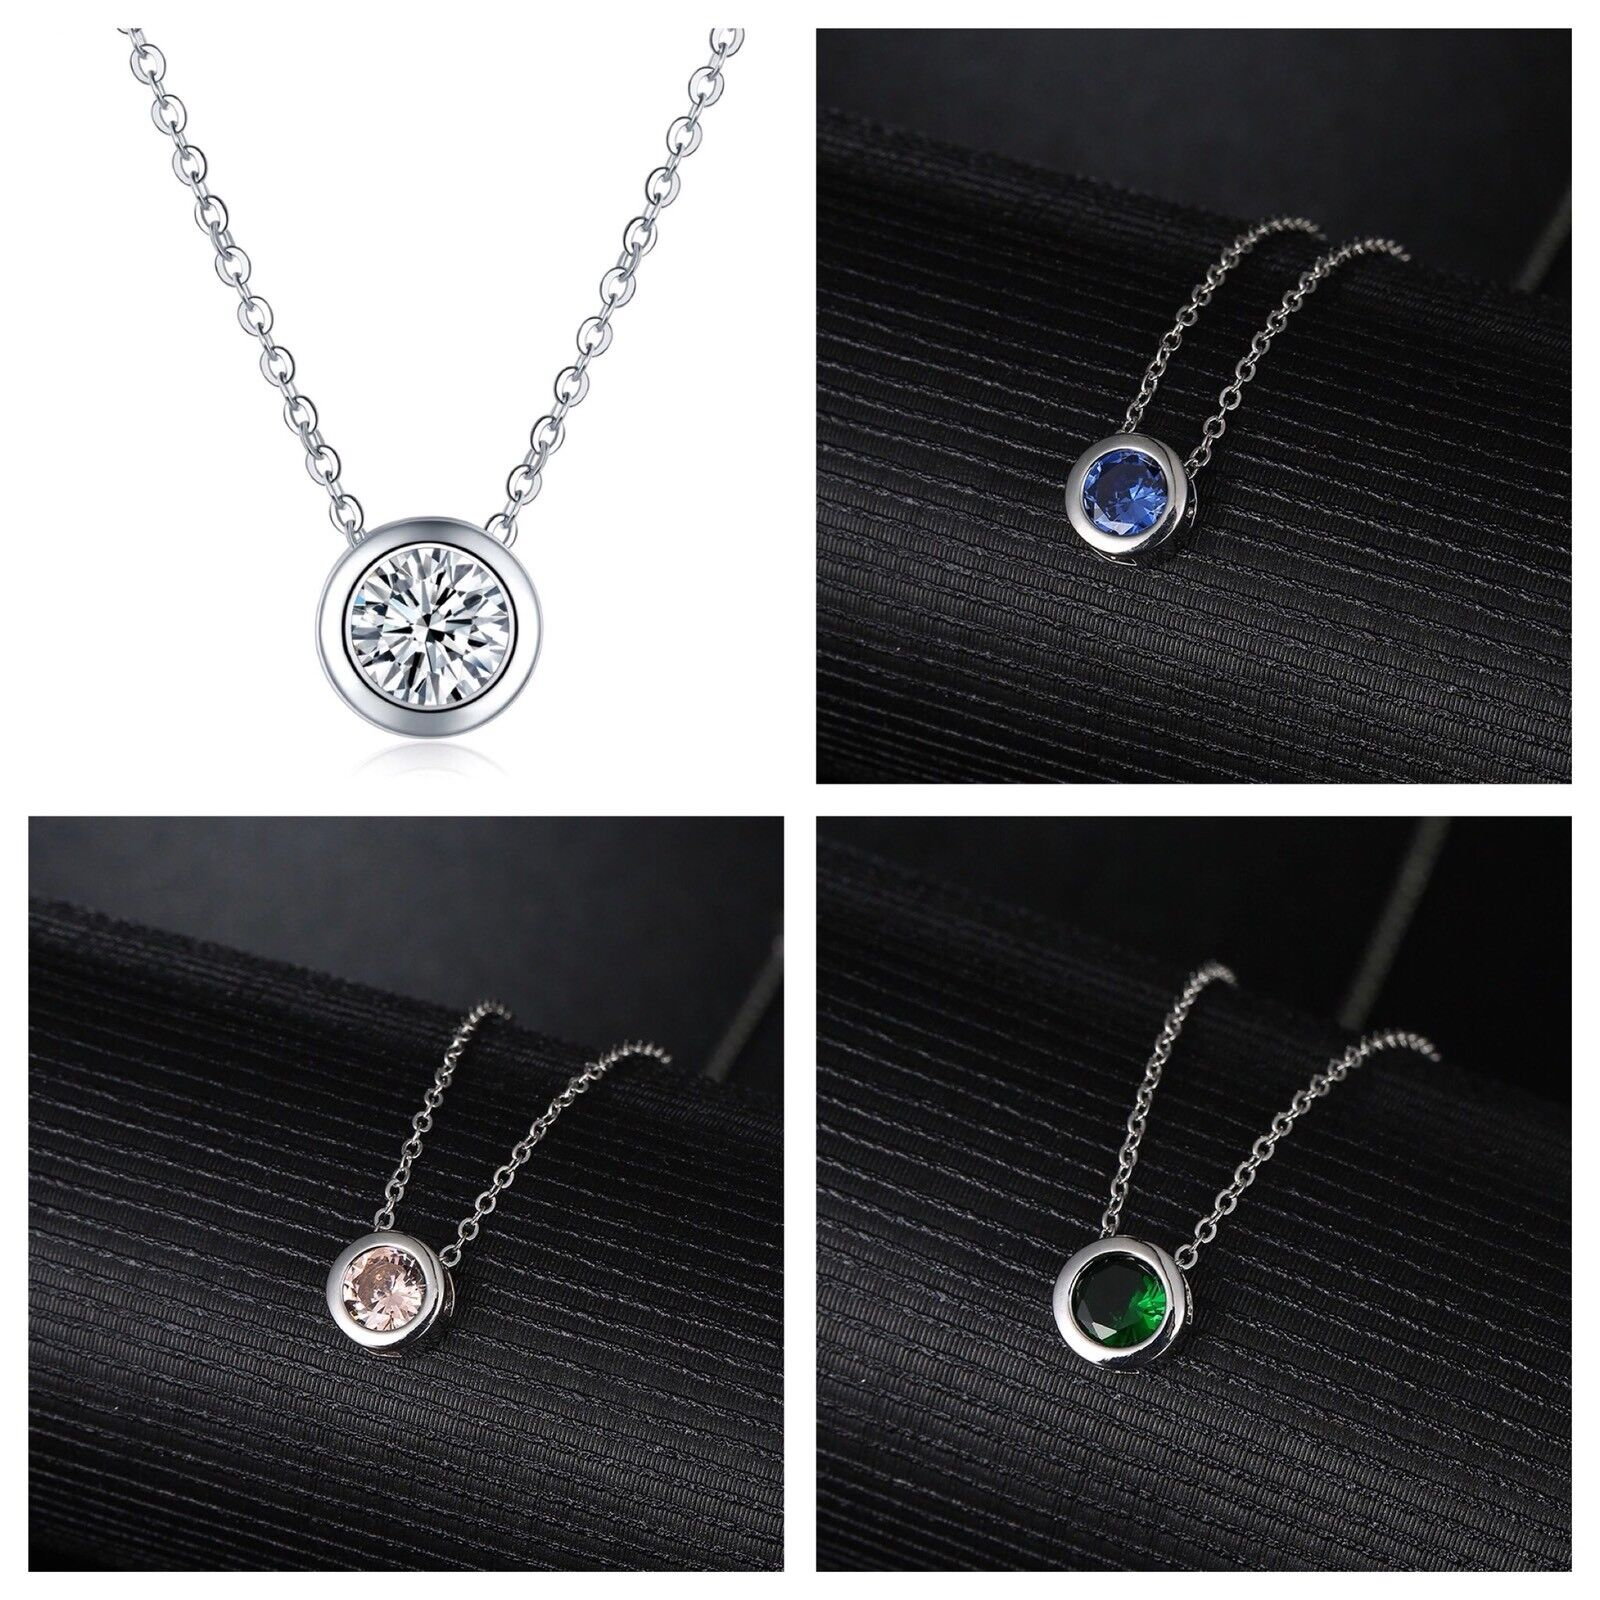 2Ct Platinum Plated Silver CZ Crystal Bezel Set Solitaire Pendant Necklace N40 Fashion Jewelry